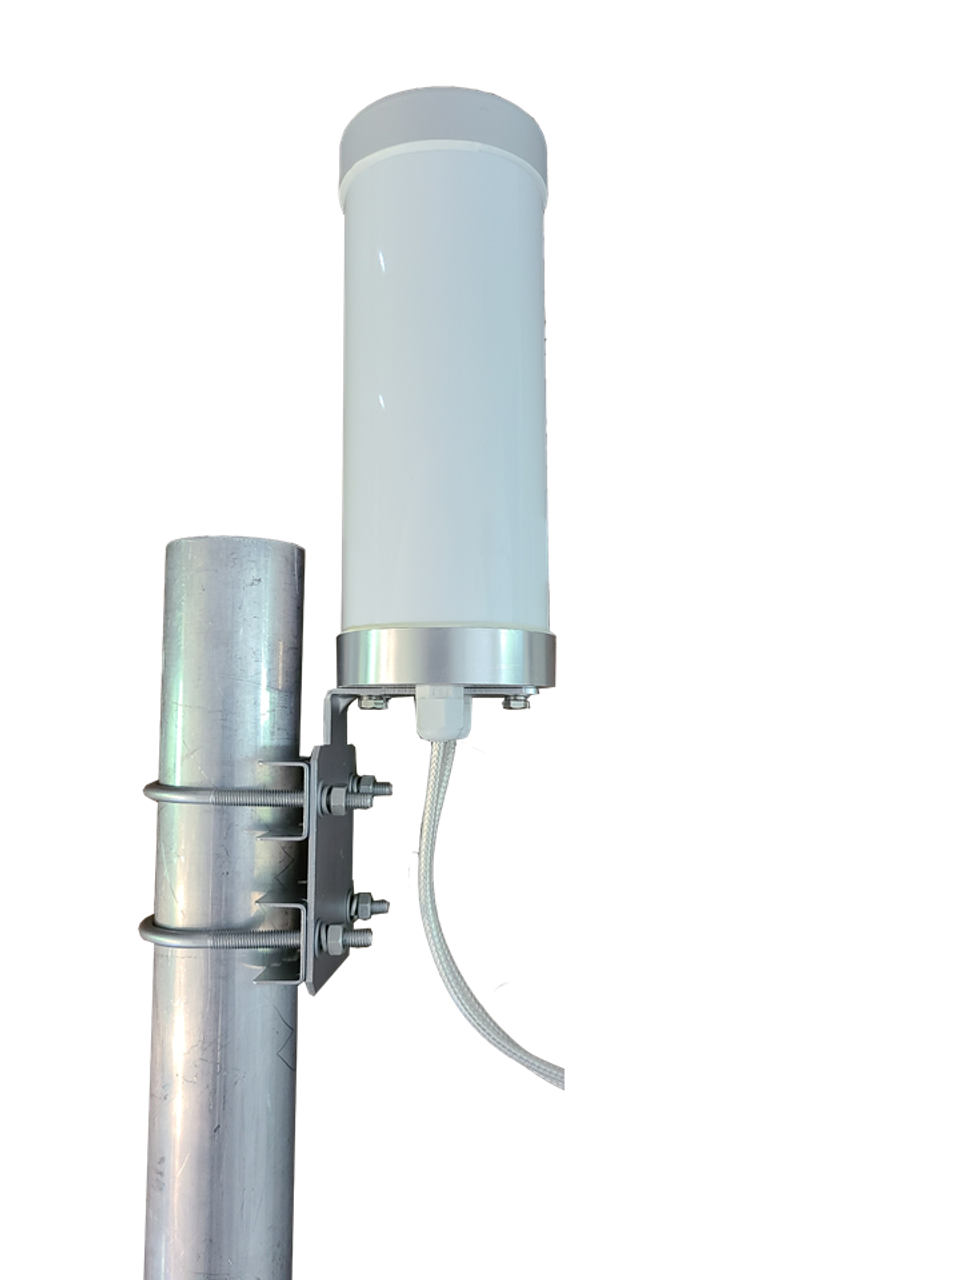 M29T T-Mobile (Band 71 Optimized) MIMO 2 x Cellular 4G LTE CBRS 5G NR M2M IoT Bracket Mount Antenna - Pole Mount